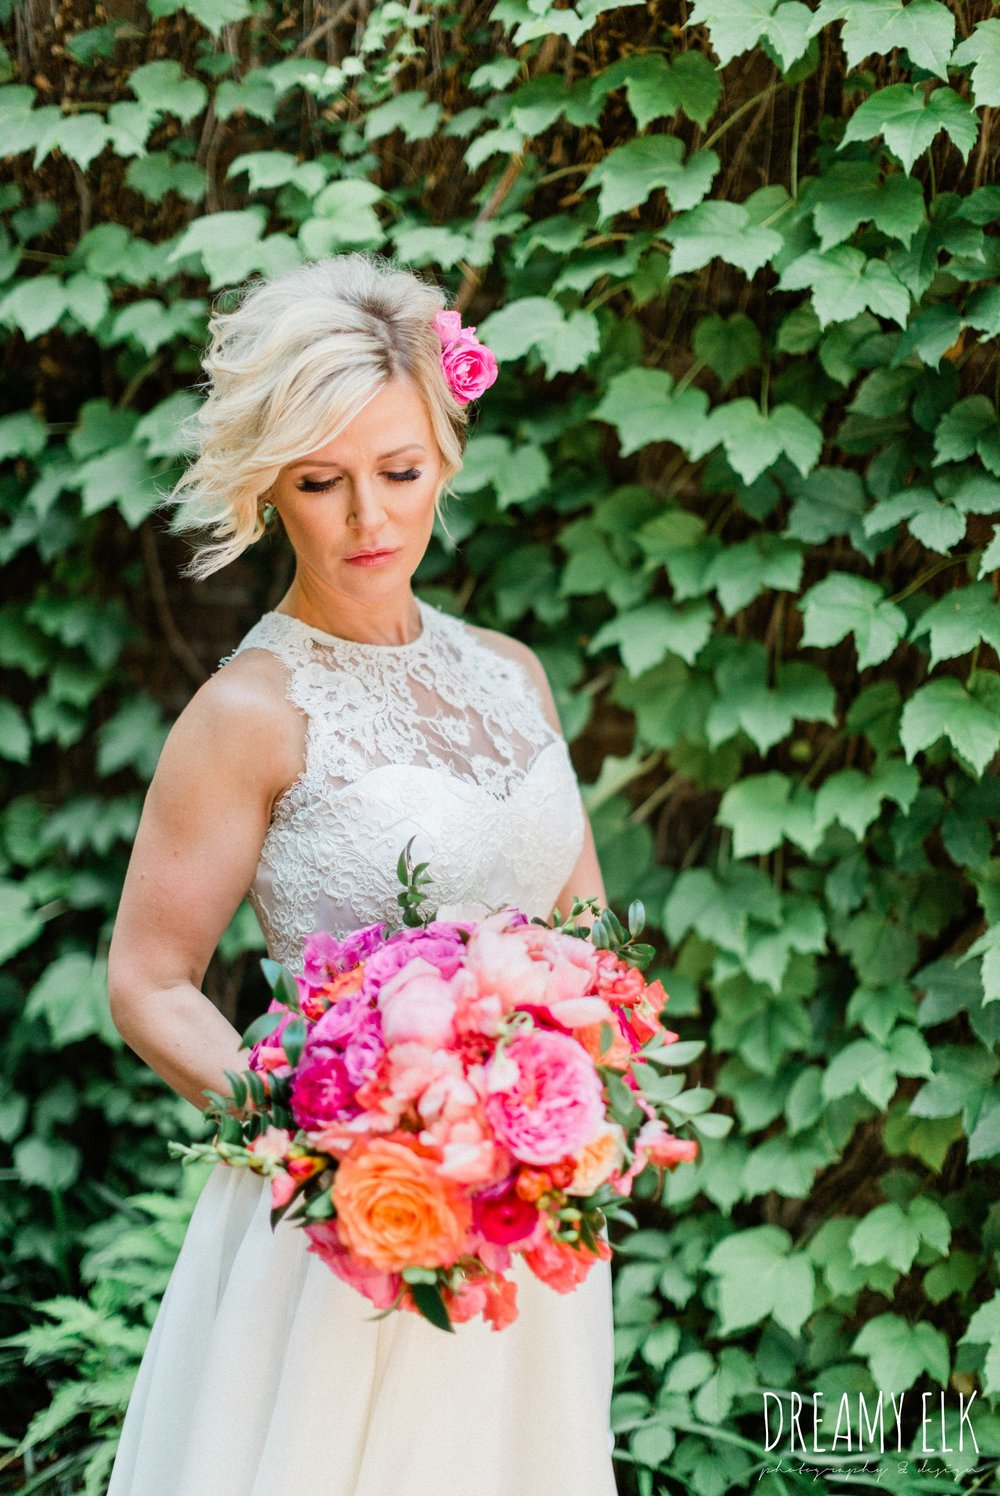 bride, michael faircloth, short wedding dress, spring colorful pink orange wedding photo, fort worth, texas, dreamy elk photography and design, jen rios weddings, kate foley designs